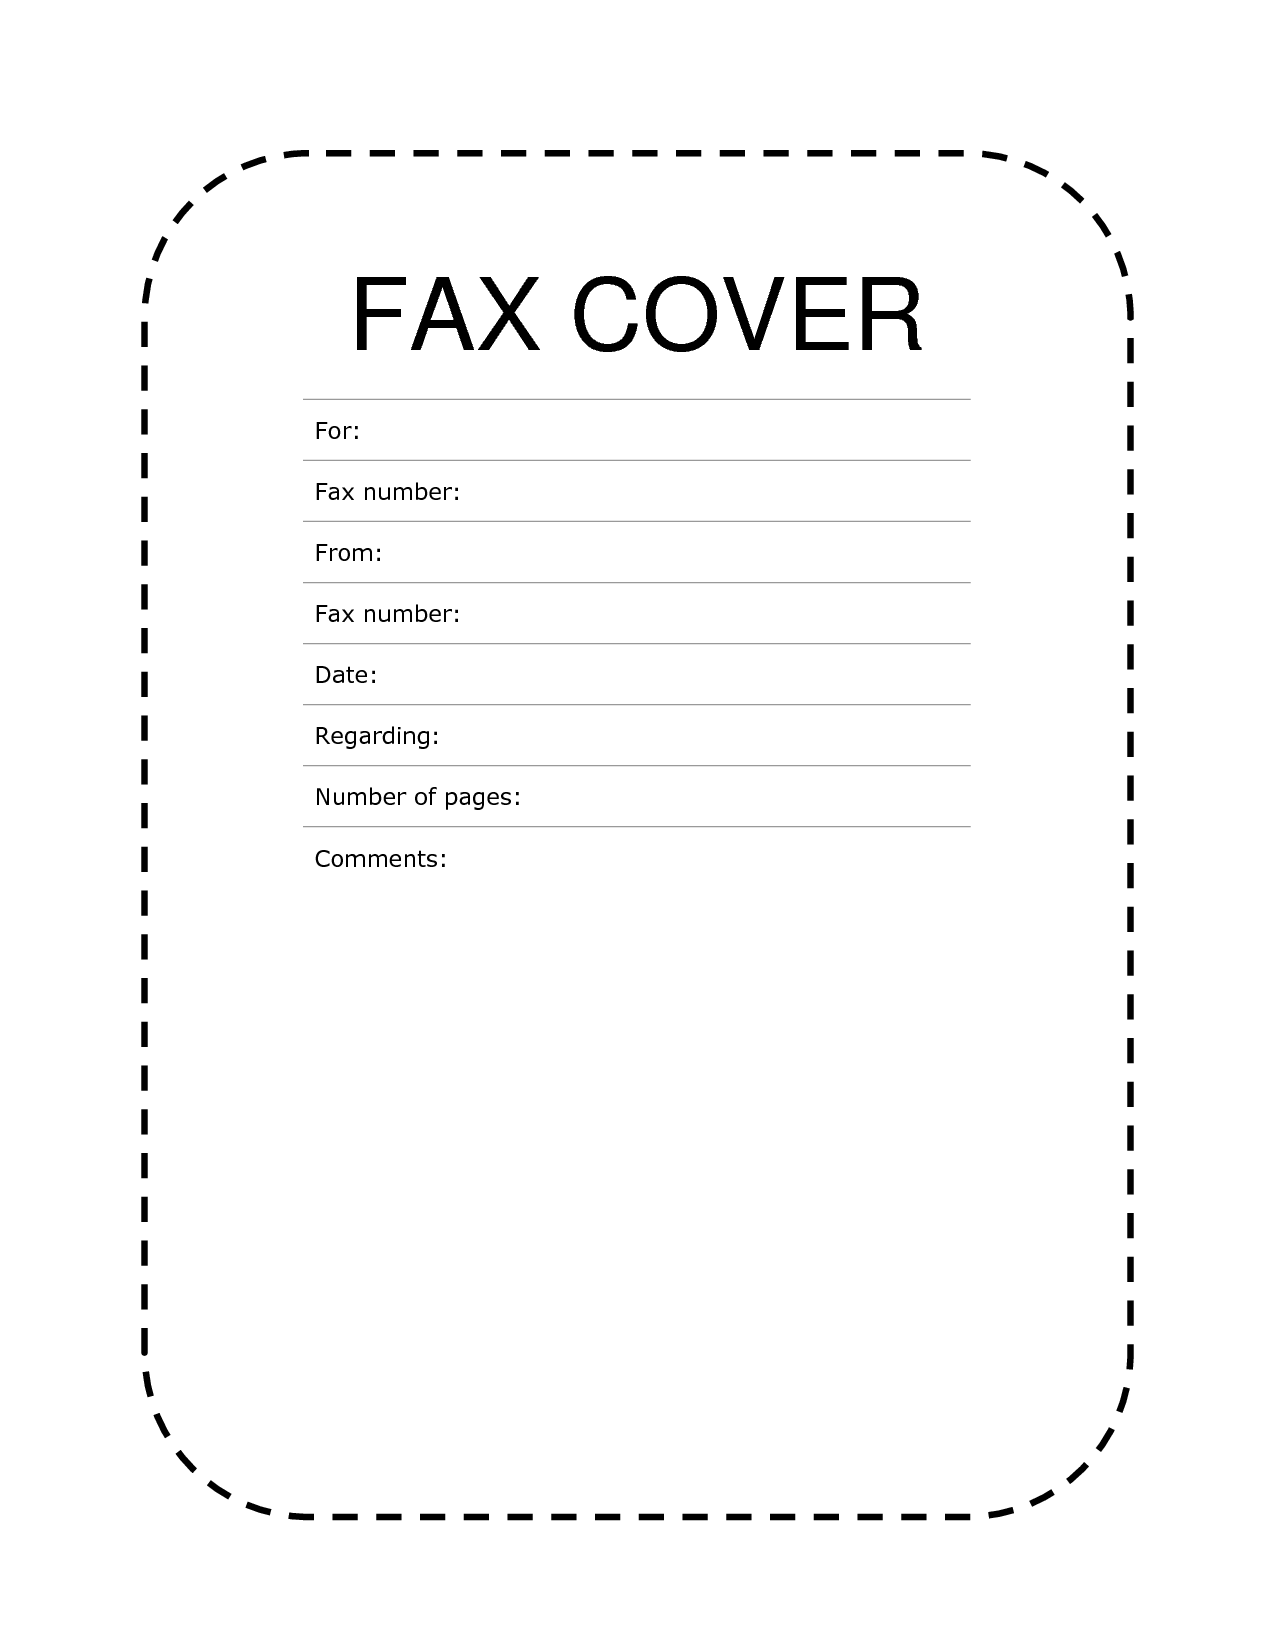 Free fax cover sheet template download this site provides free faxing fax cover spiritdancerdesigns